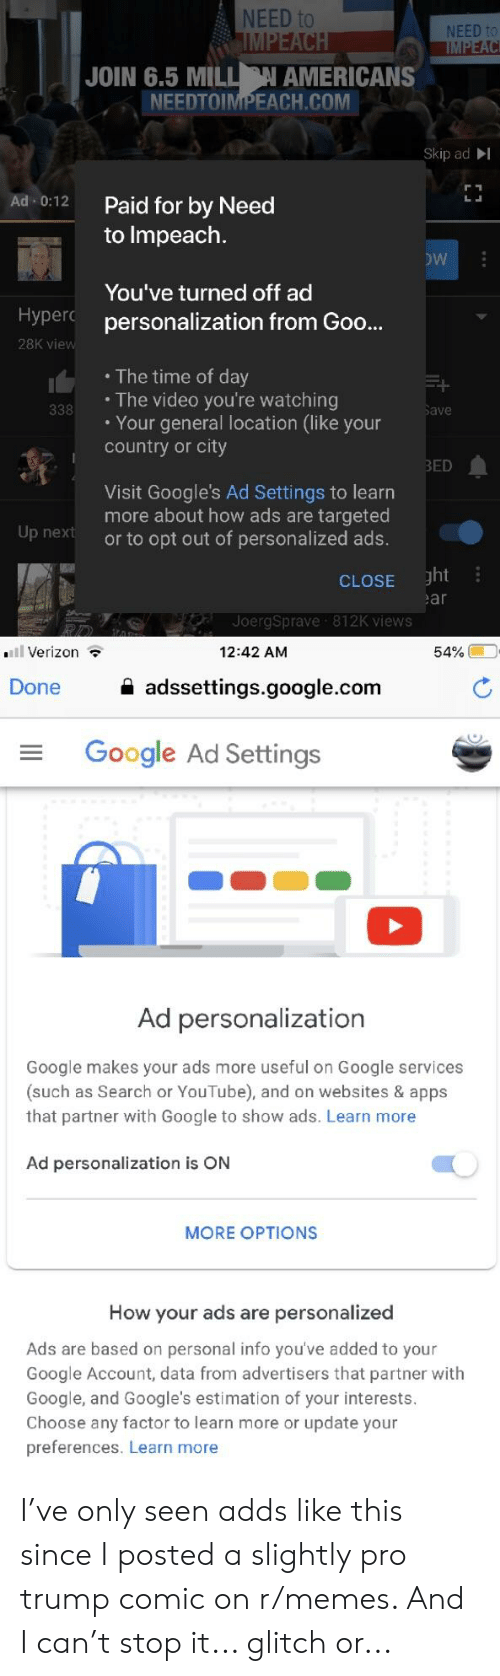 Google, Memes, and Verizon: NEED to  NEED to  JOIN 6.5 MILN AMERICANS  NEEDTOIMPEACH.COM  Skip adI  Paid for by Need  to Impeach.  Ad-0:12  You've turned off ad  Hyperc personalization from Goo..  28K vie  The time of day  . The video you're watching  . Your general location (like your  country or city  ave  ED  Visit Google's Ad Settings to learn  more about how ads are targeted  or to opt out of personalized ads.  Up next  CLOSE ght  JoergSprave 812K views  Verizon ?  12:42 AM  Done  adssettings.google.com  Google Ad Settings  Ad personalization  Google makes your ads more useful on Google services  (such as Search or YouTube), and on websites & apps  that partner with Google to show ads. Learn more  Ad personalization is OfN  MORE OPTIONS  How your ads are personalized  Ads are based on personal info you've added to your  Google Account, data from advertisers that partner with  Google, and Google's estimation of your interests  Choose any factor to learn more or update your  preferences. Learn more I've only seen adds like this since I posted a slightly pro trump comic on r/memes. And I can't stop it... glitch or...